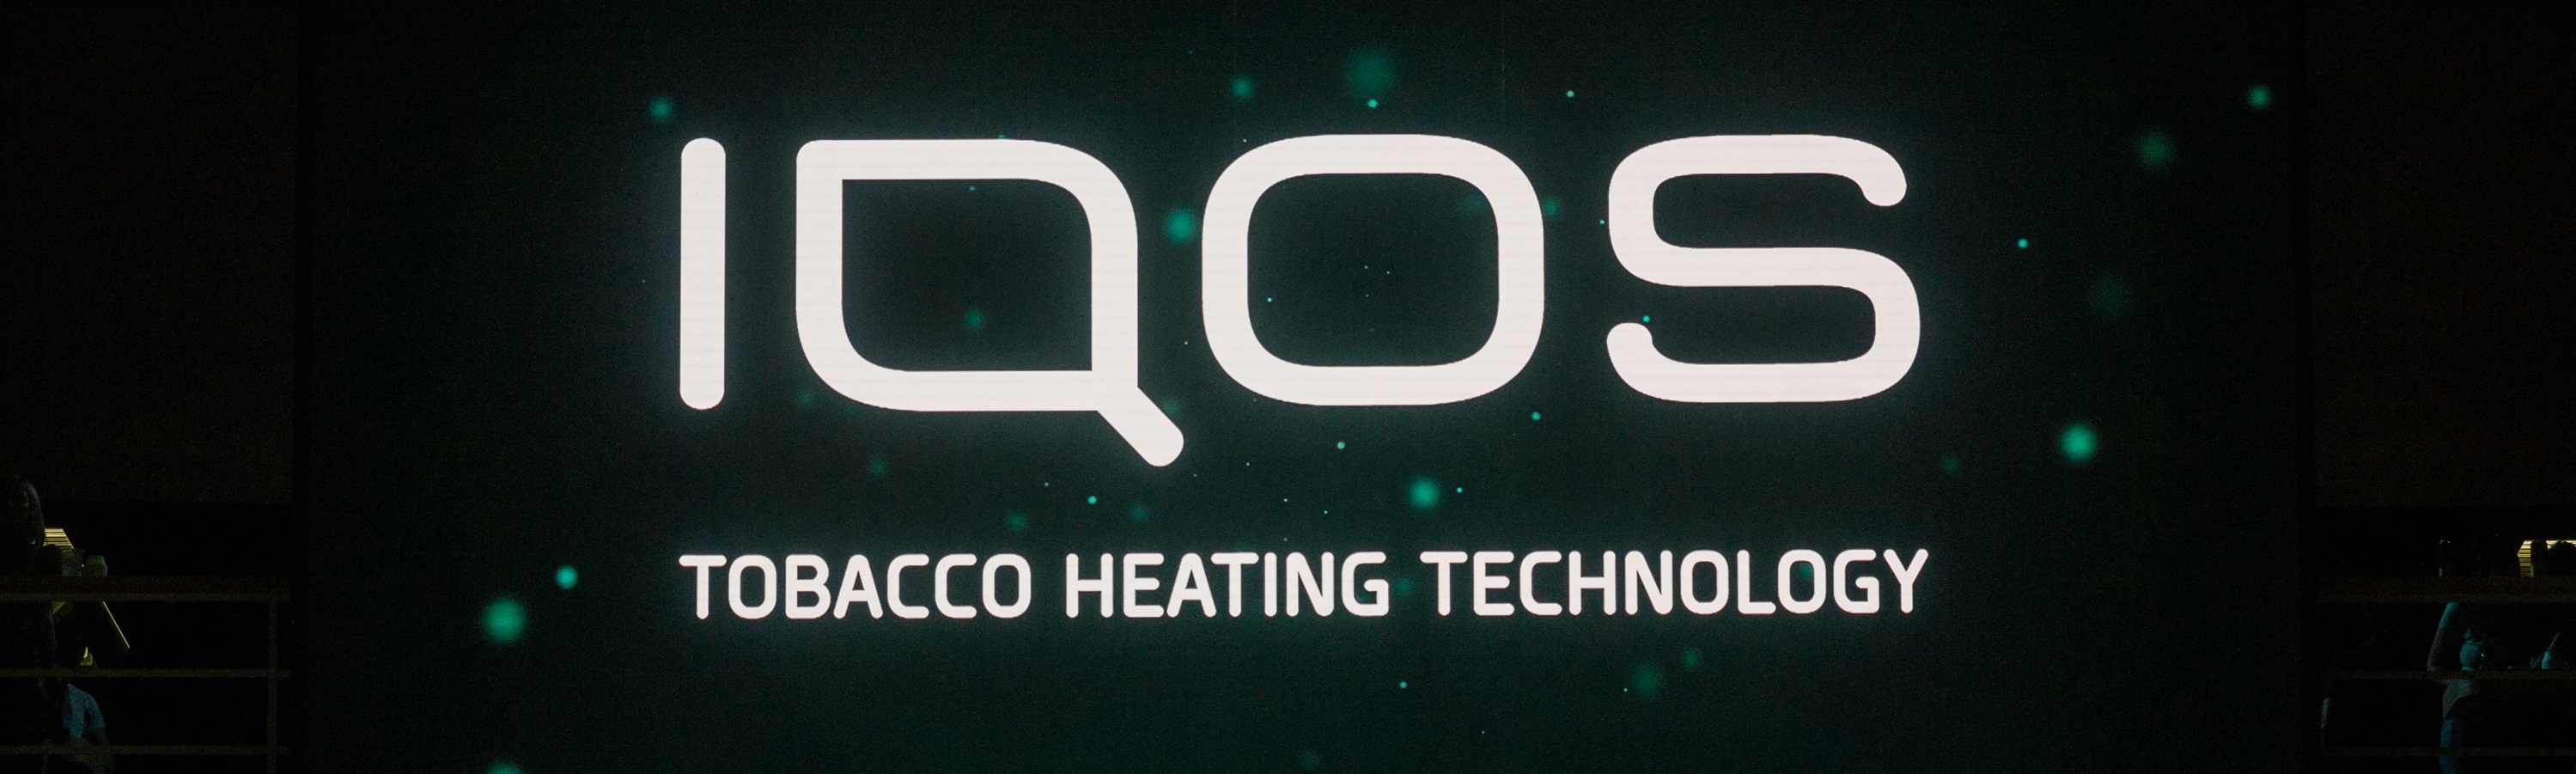 IQOS tobacco heating technology